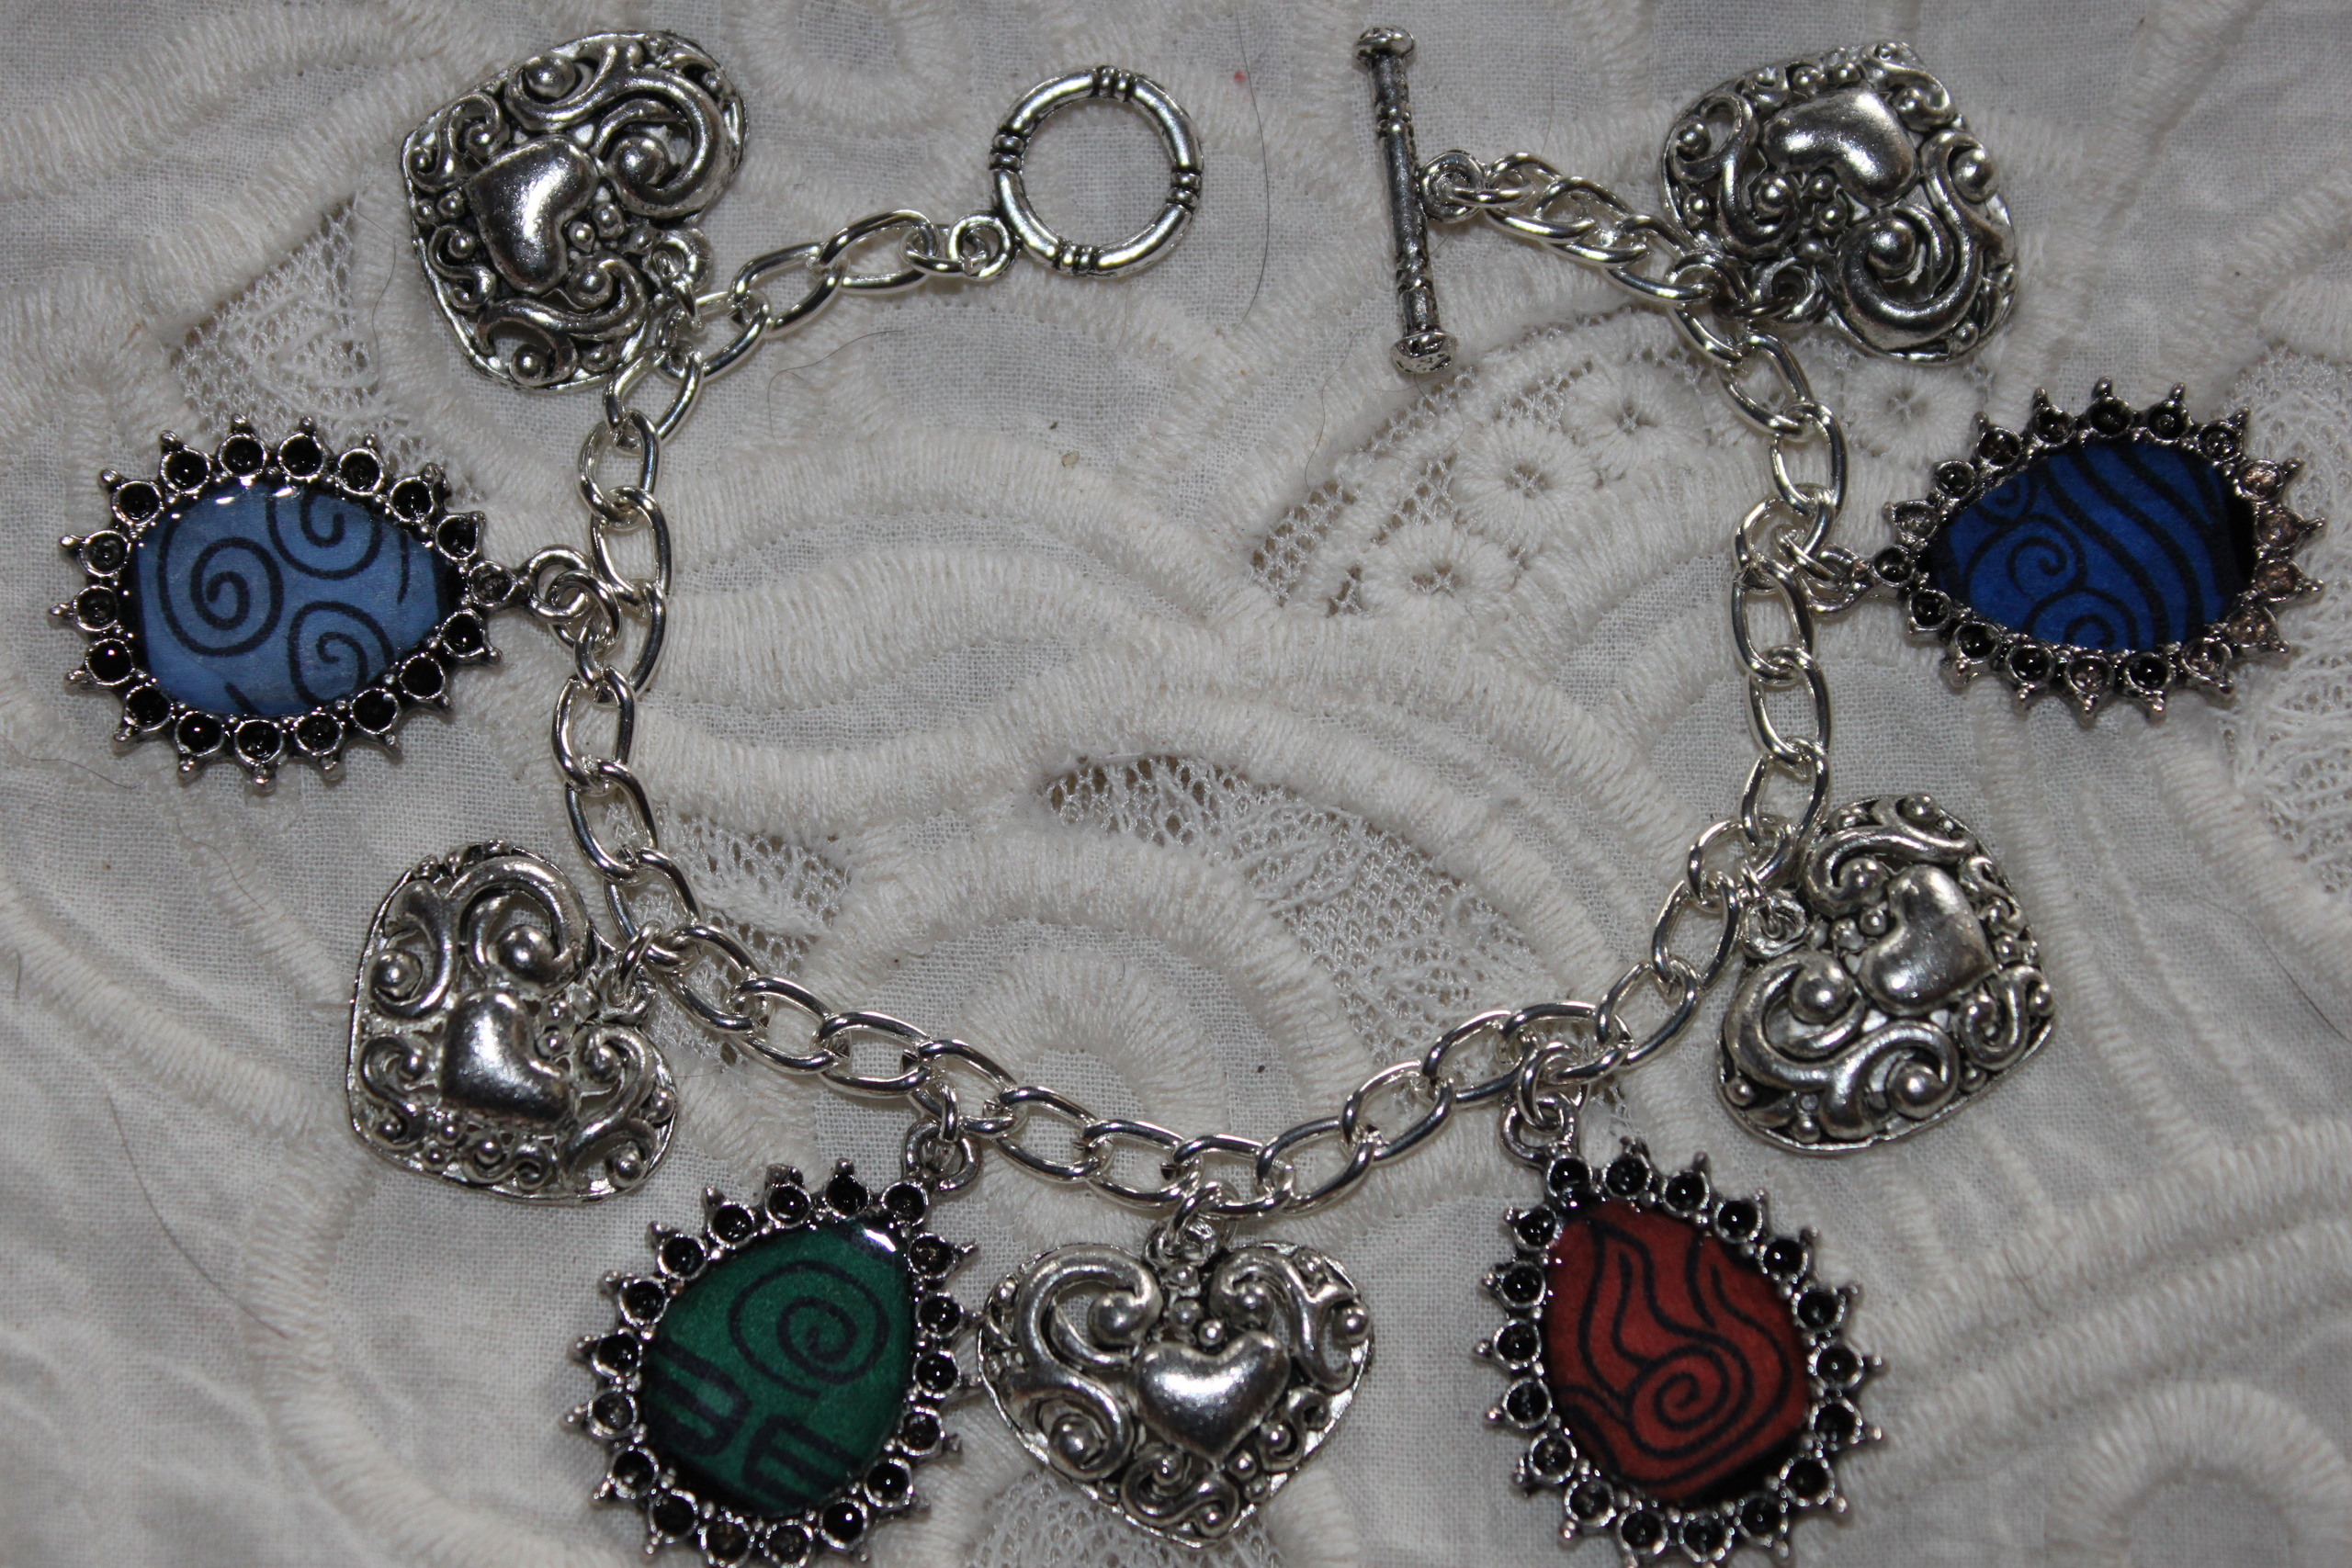 4 Nations Emblems charm bracelet